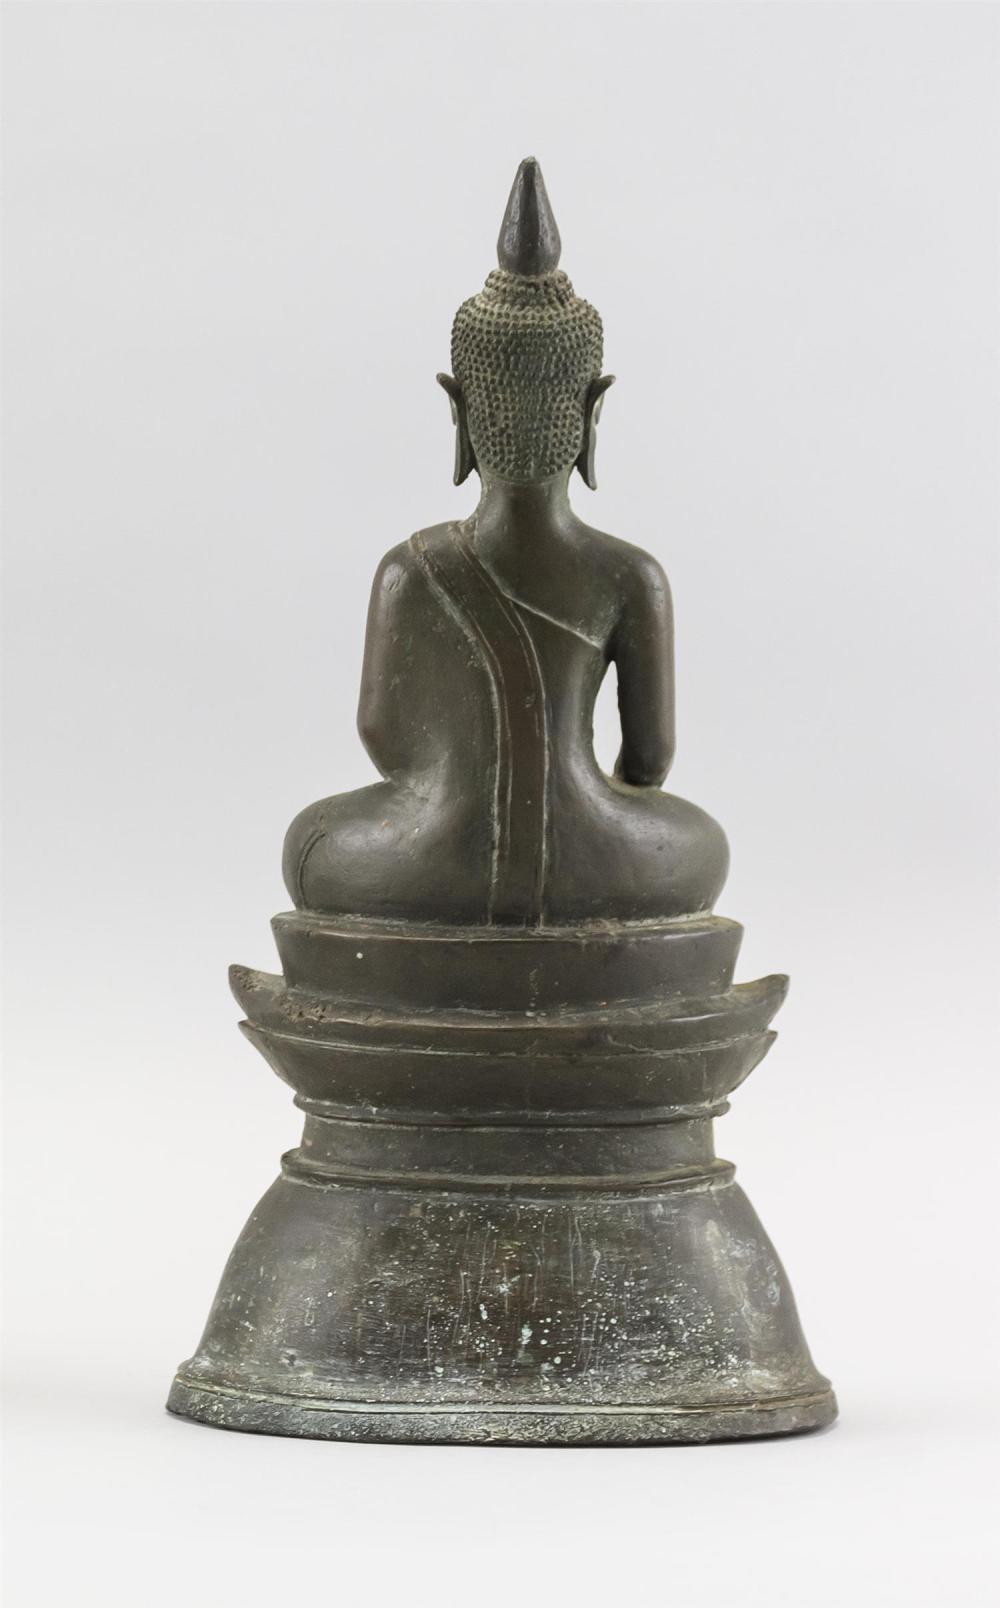 TIBETAN BRONZE FIGURE OF BUDDHA Seated in an earth touching position on a raised oval base. Height 11.5